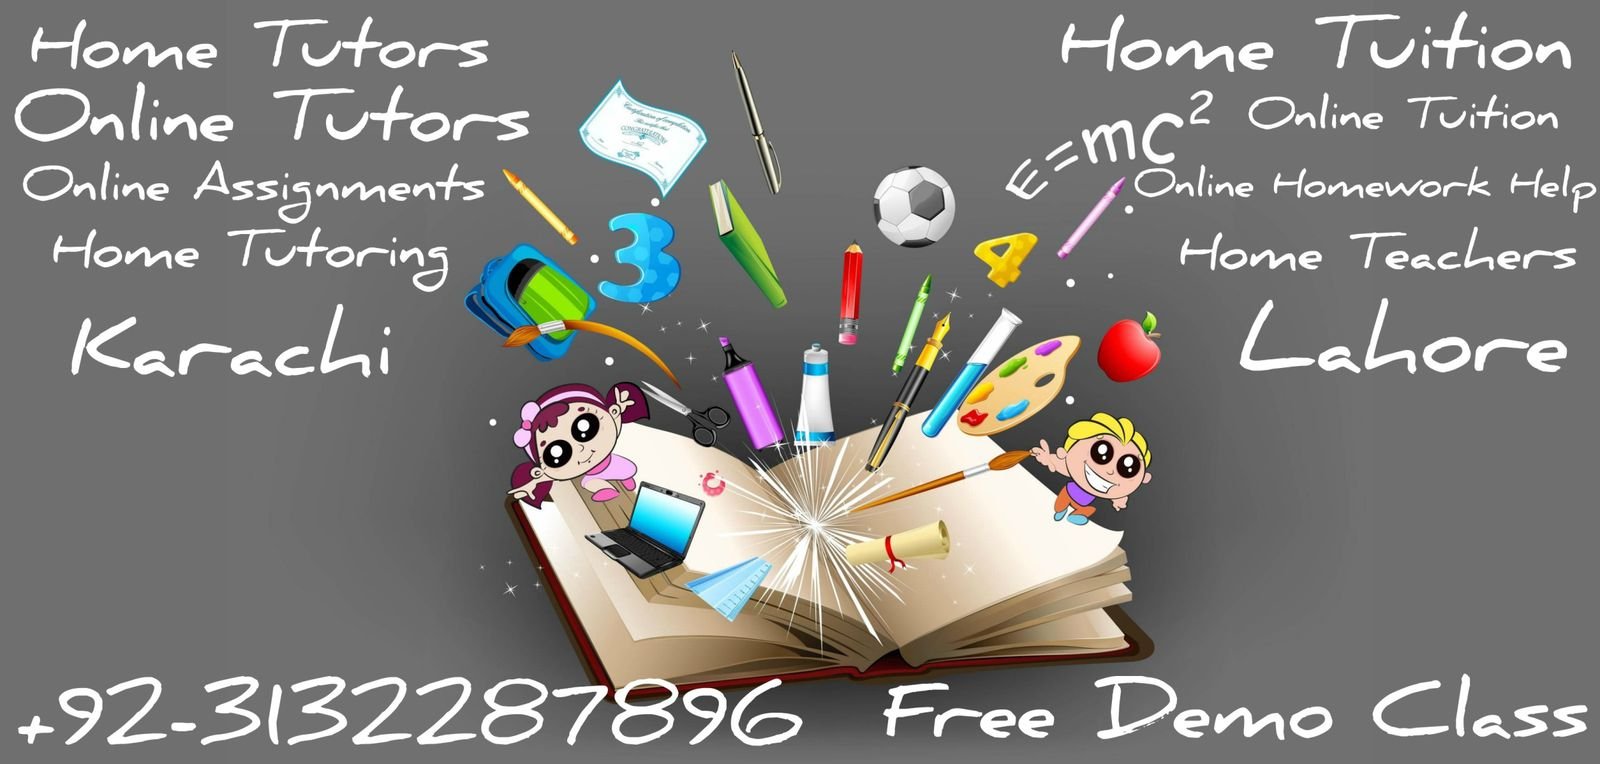 statistics help online online dissertation help marketing  dha alevel tutor dha home tuition dha tutoring agency dha tutor stats tutor karachi statistics tuition